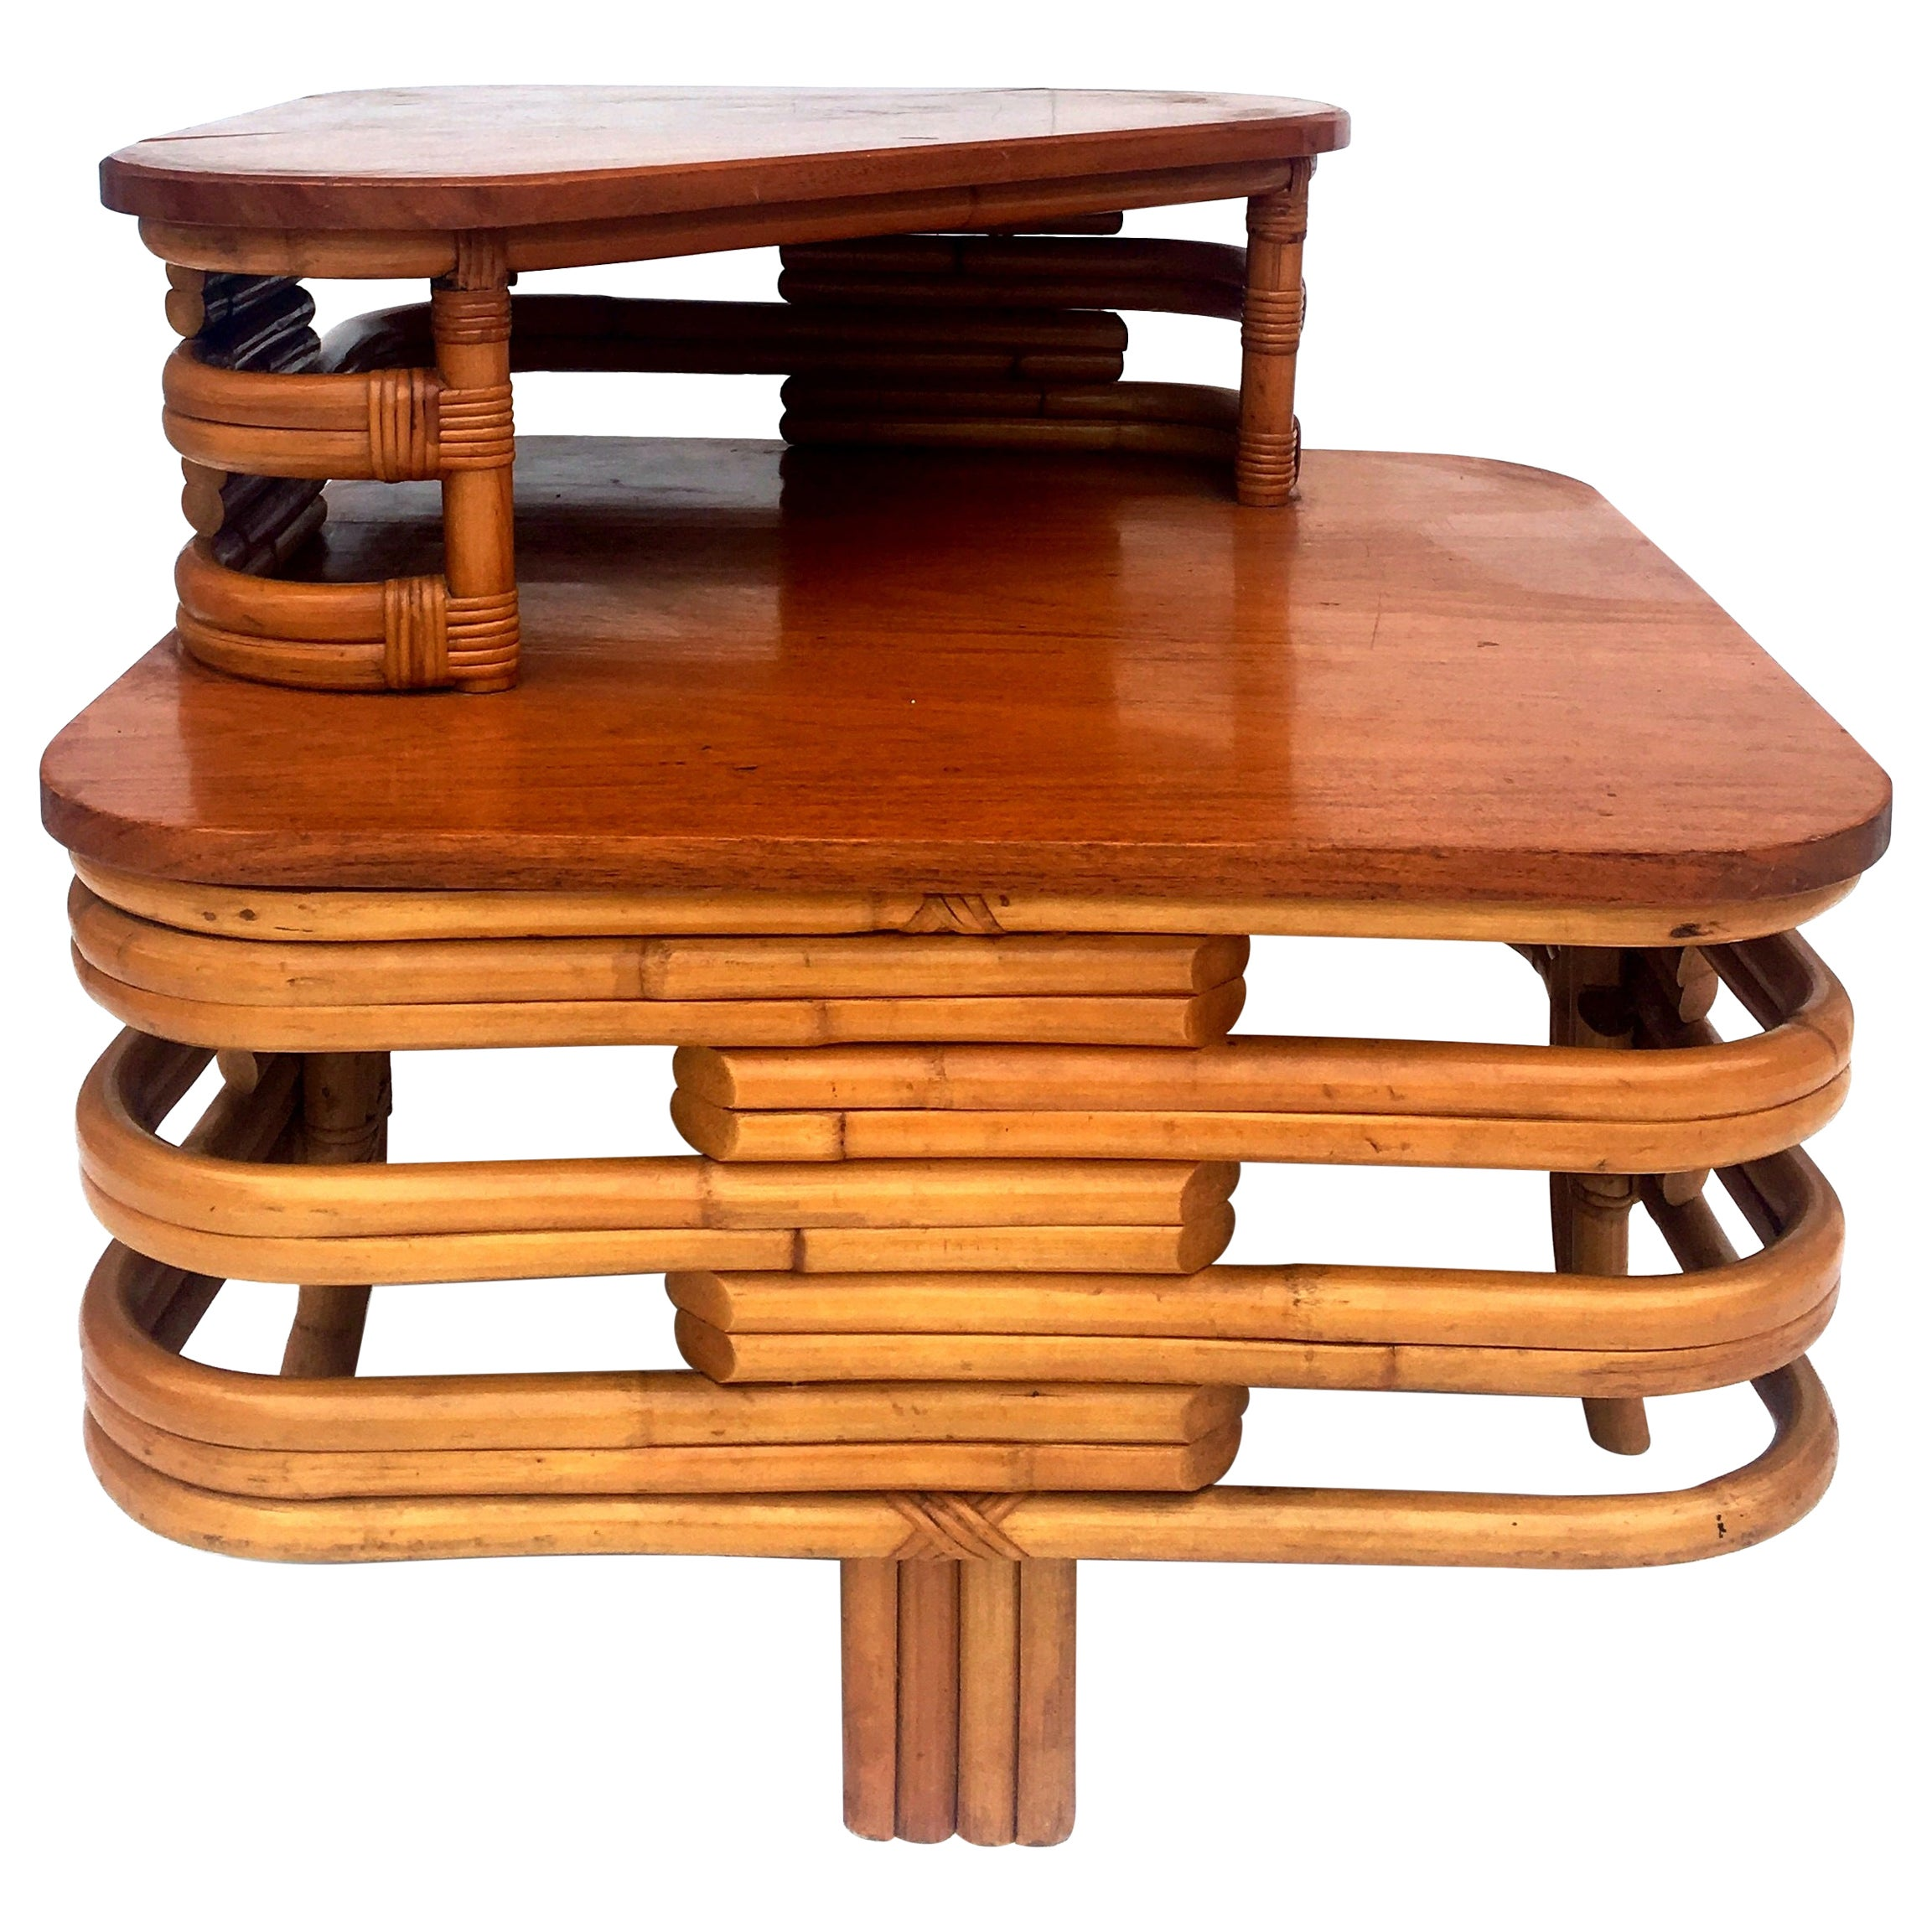 1930s Art Deco Two-Tier Bent Rattan and Mahogany Top Table by Paul Frankl